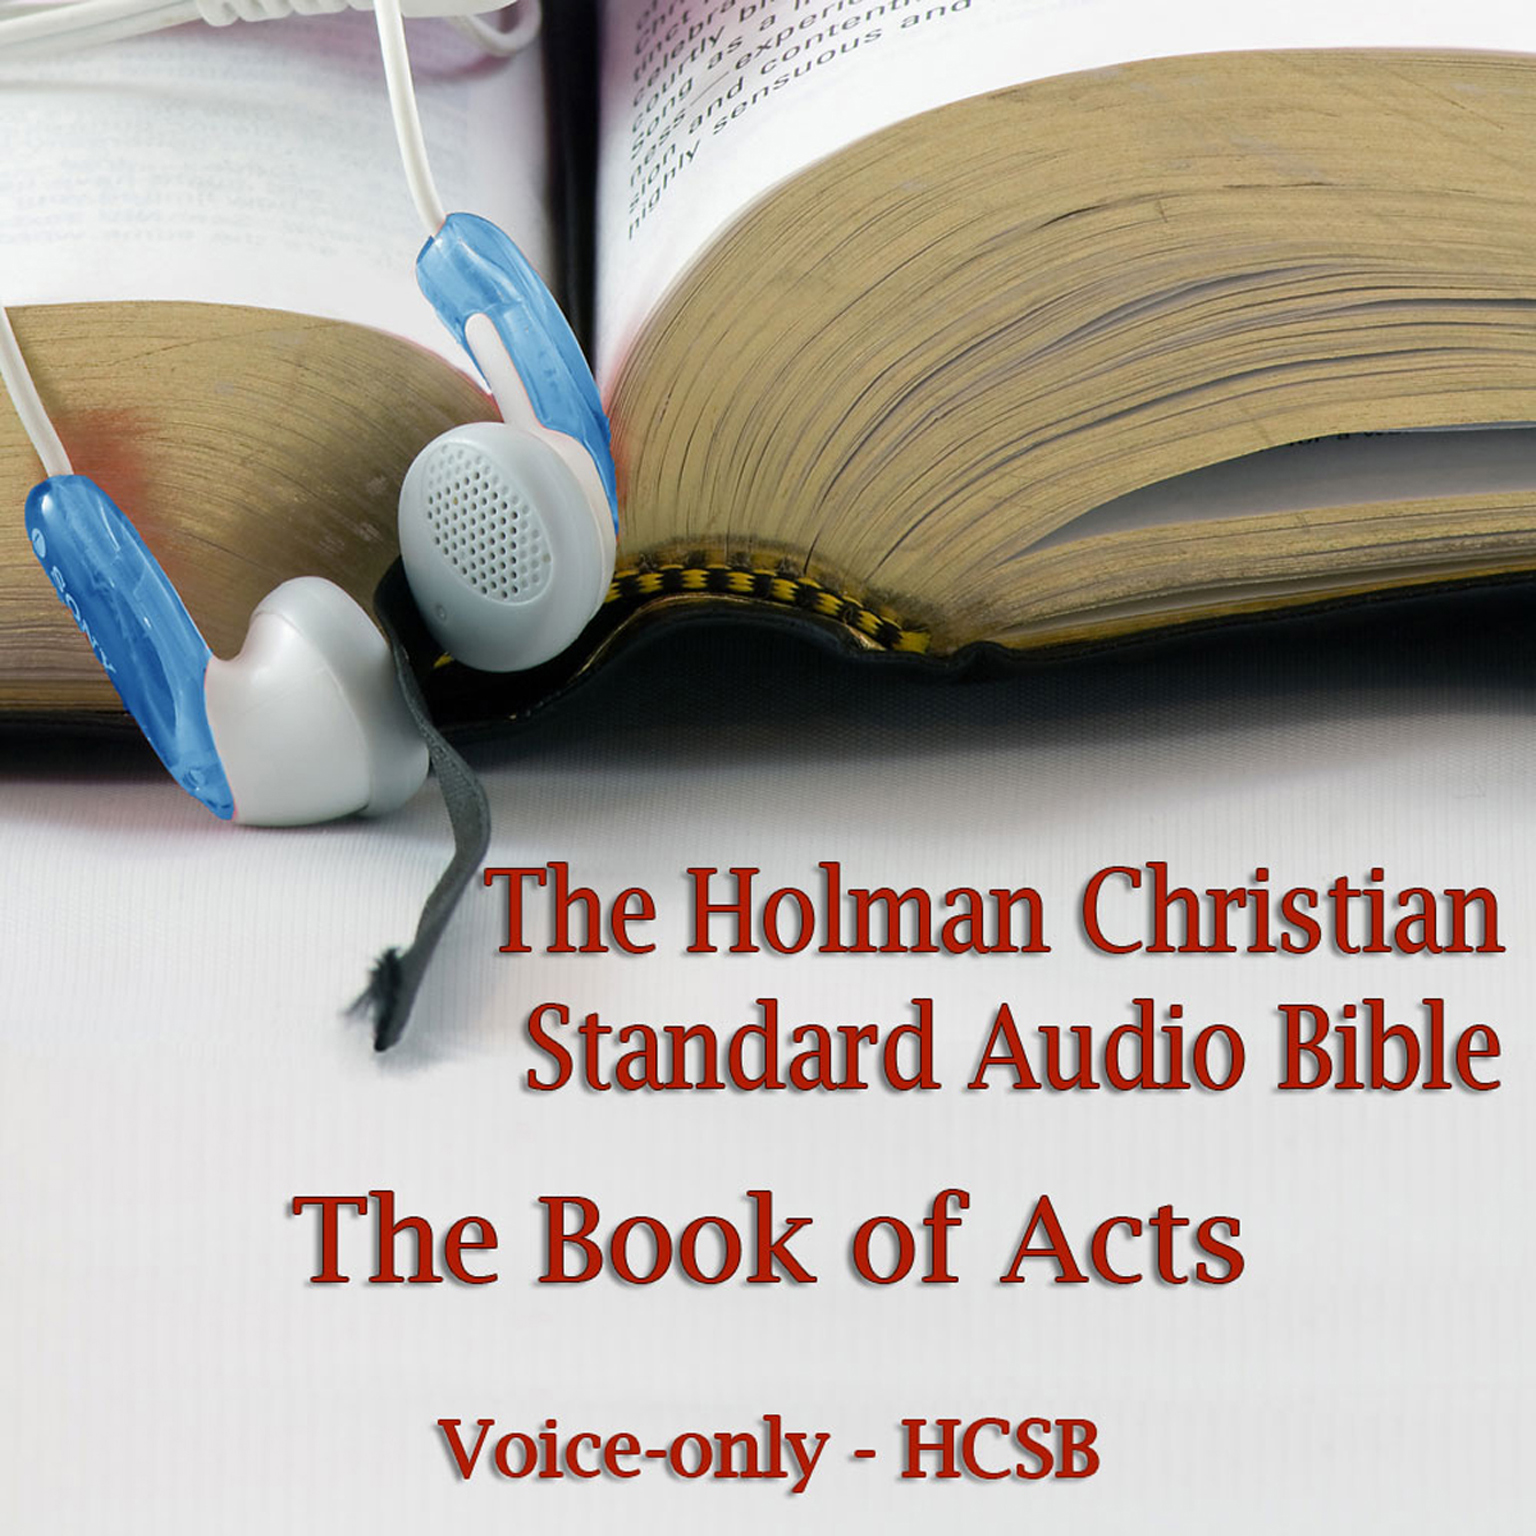 Printable The Book of Acts: The Voice Only Holman Christian Standard Audio Bible (HCSB) Audiobook Cover Art